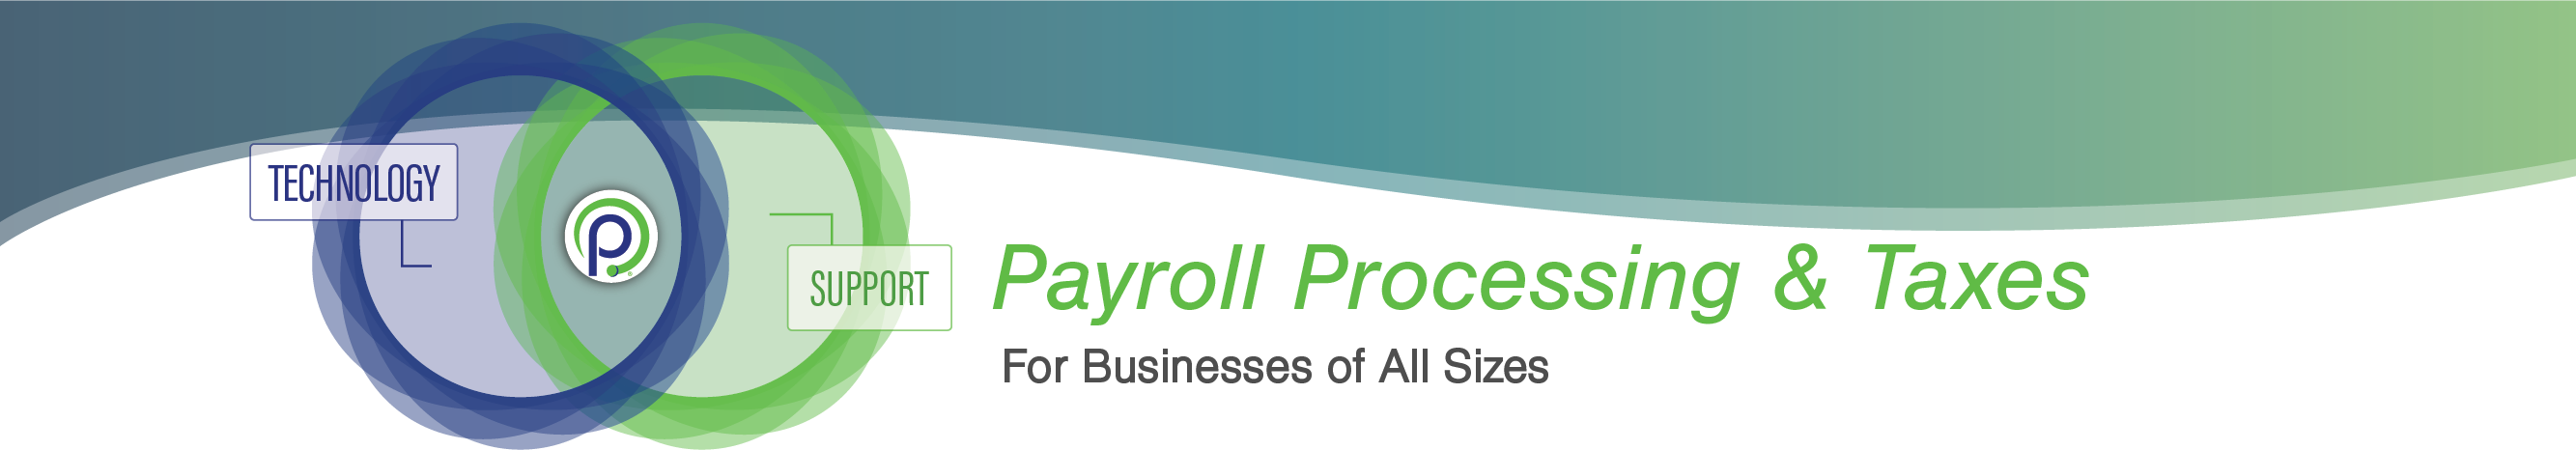 Payroll Processing Technology Support Businesses of All Sizes